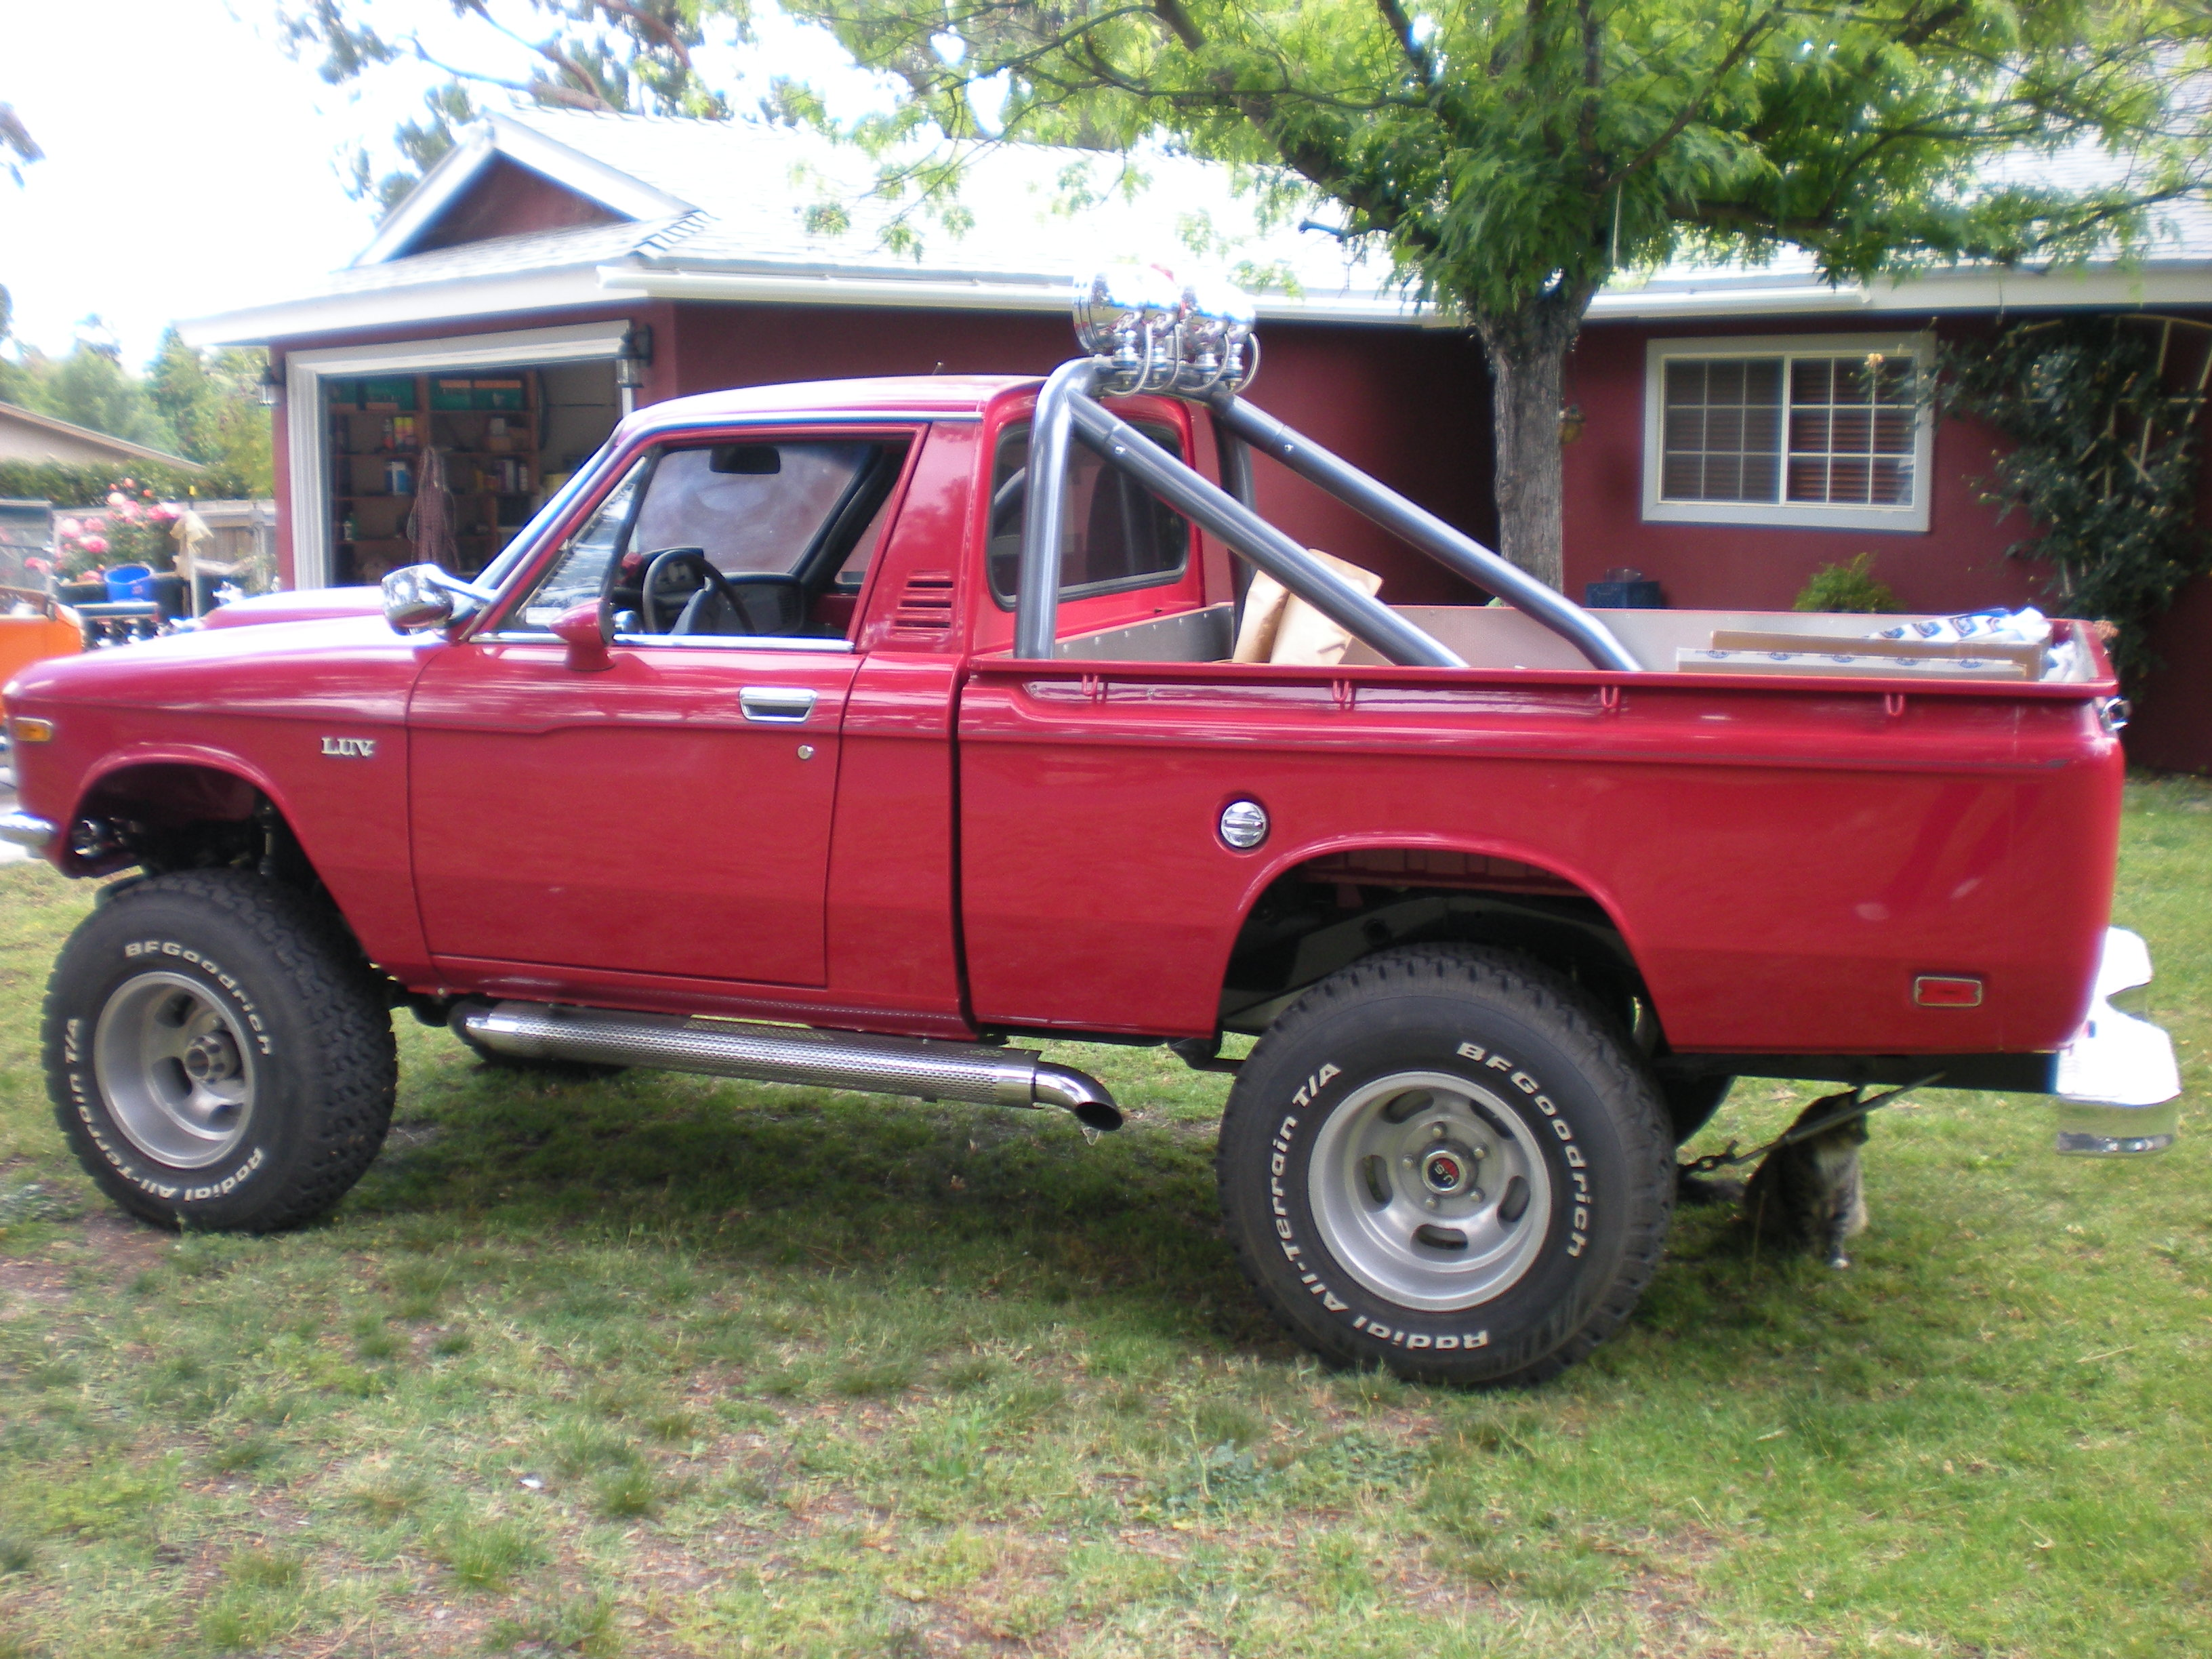 1972 Chevrolet Luv Information And Photos Momentcar